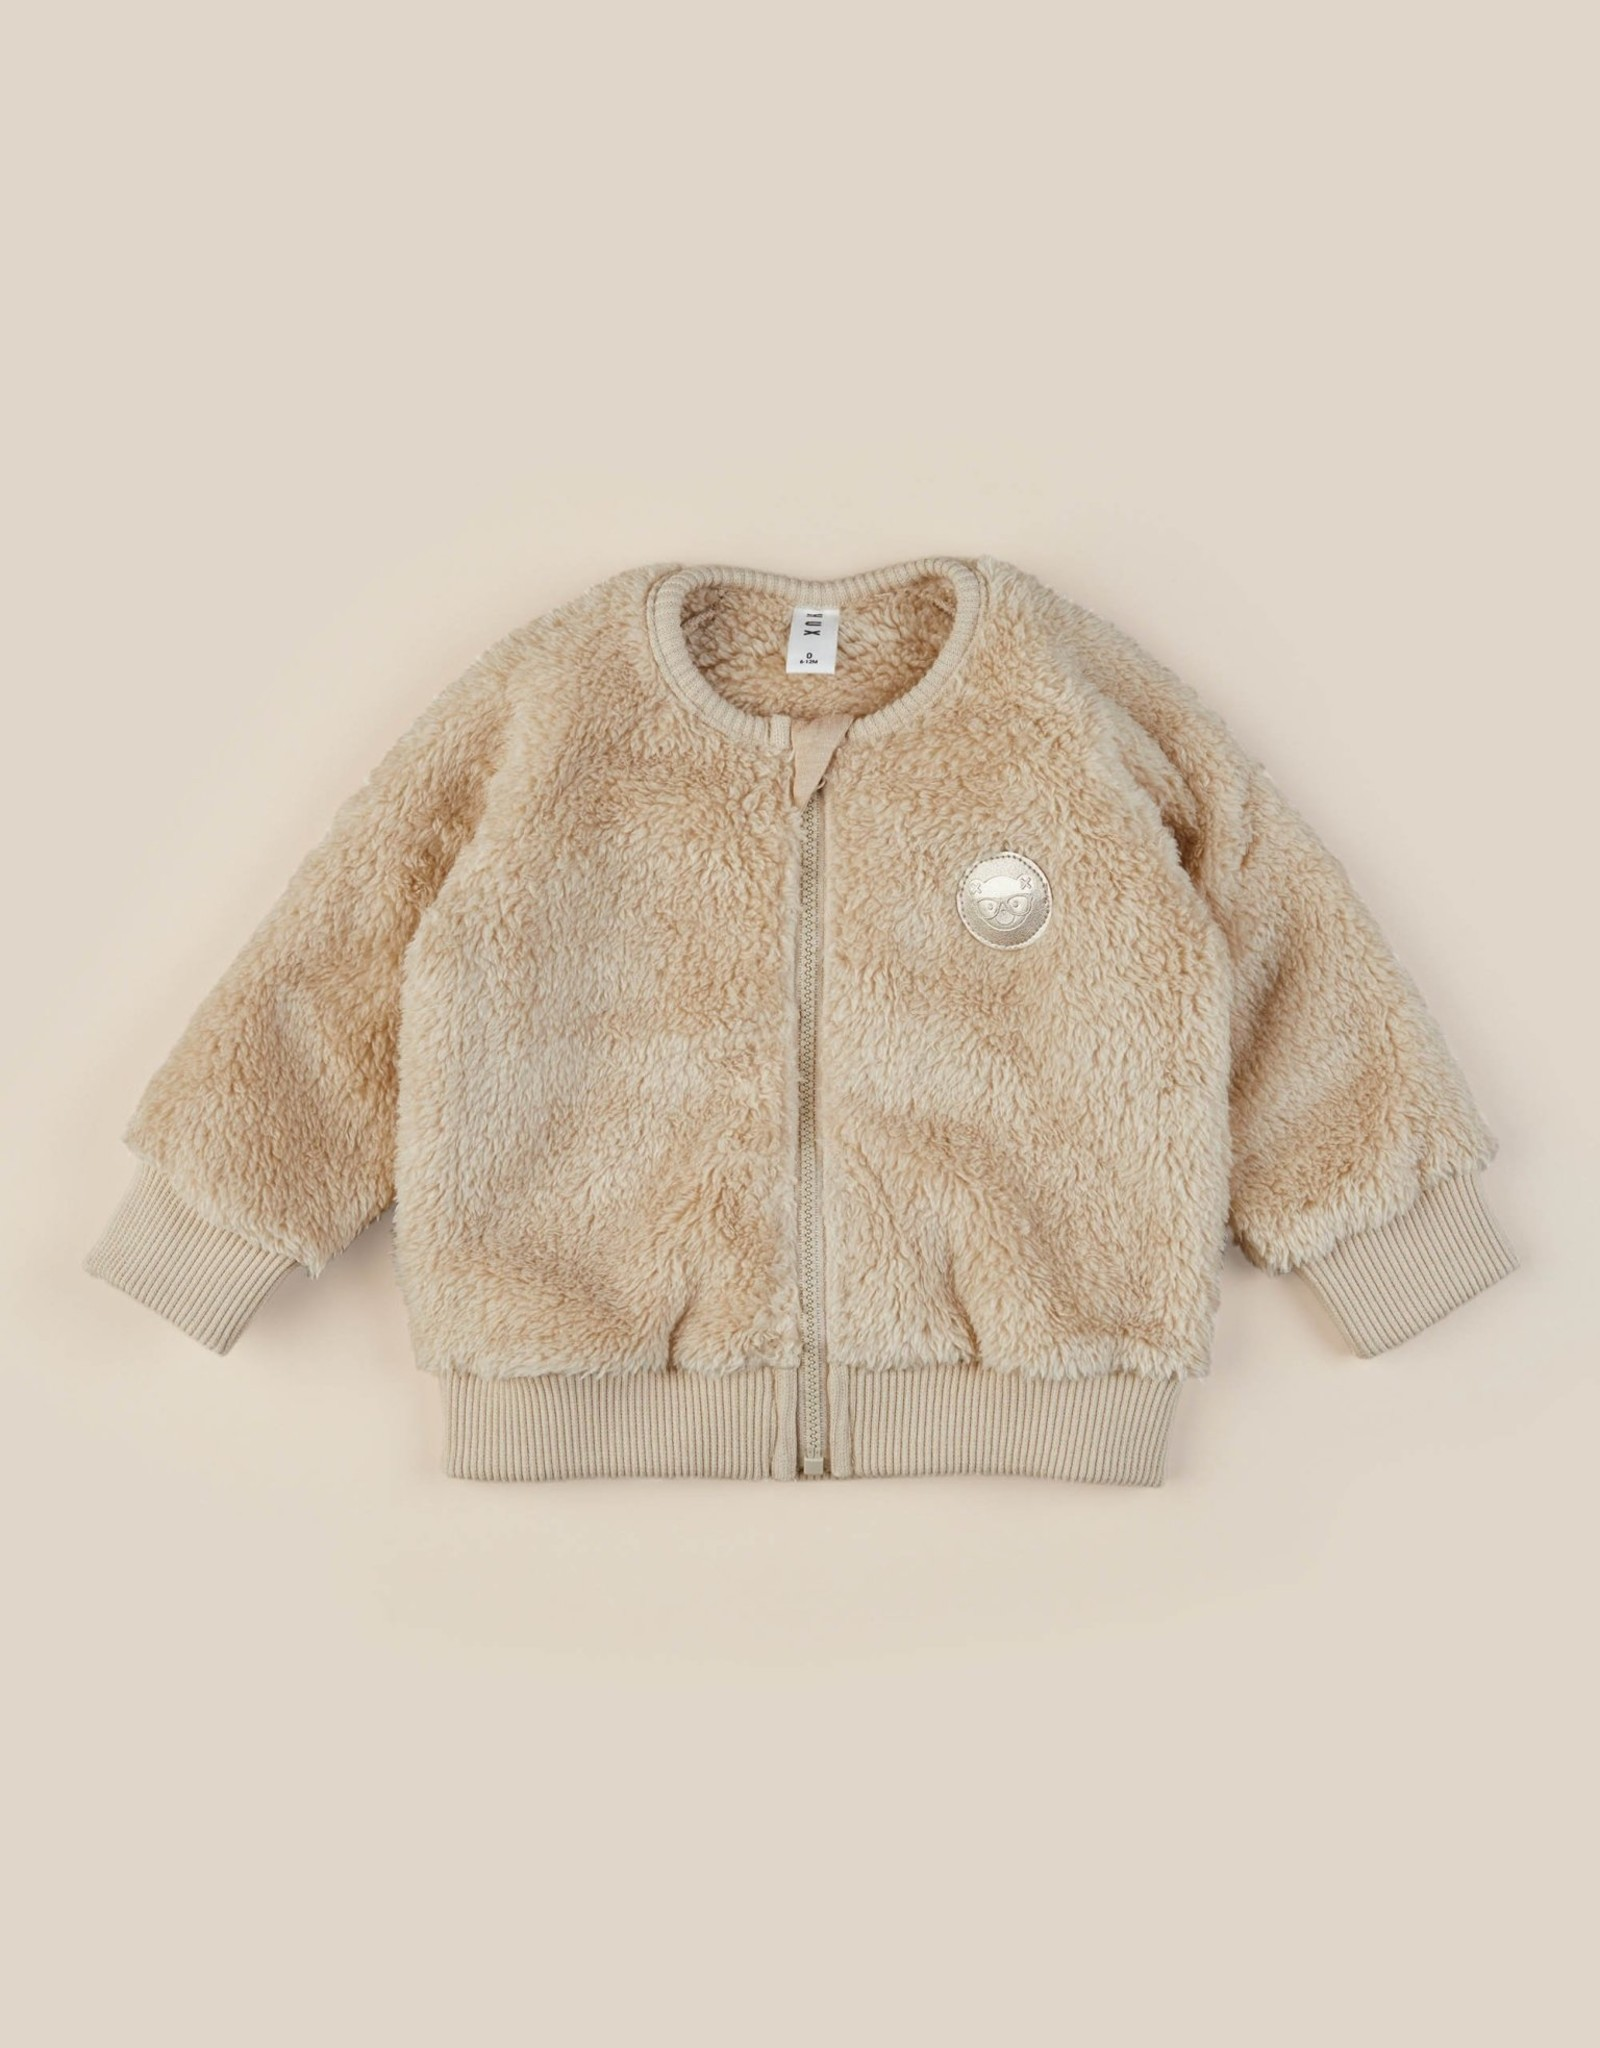 Hux Baby Hux Baby Fur Jacket